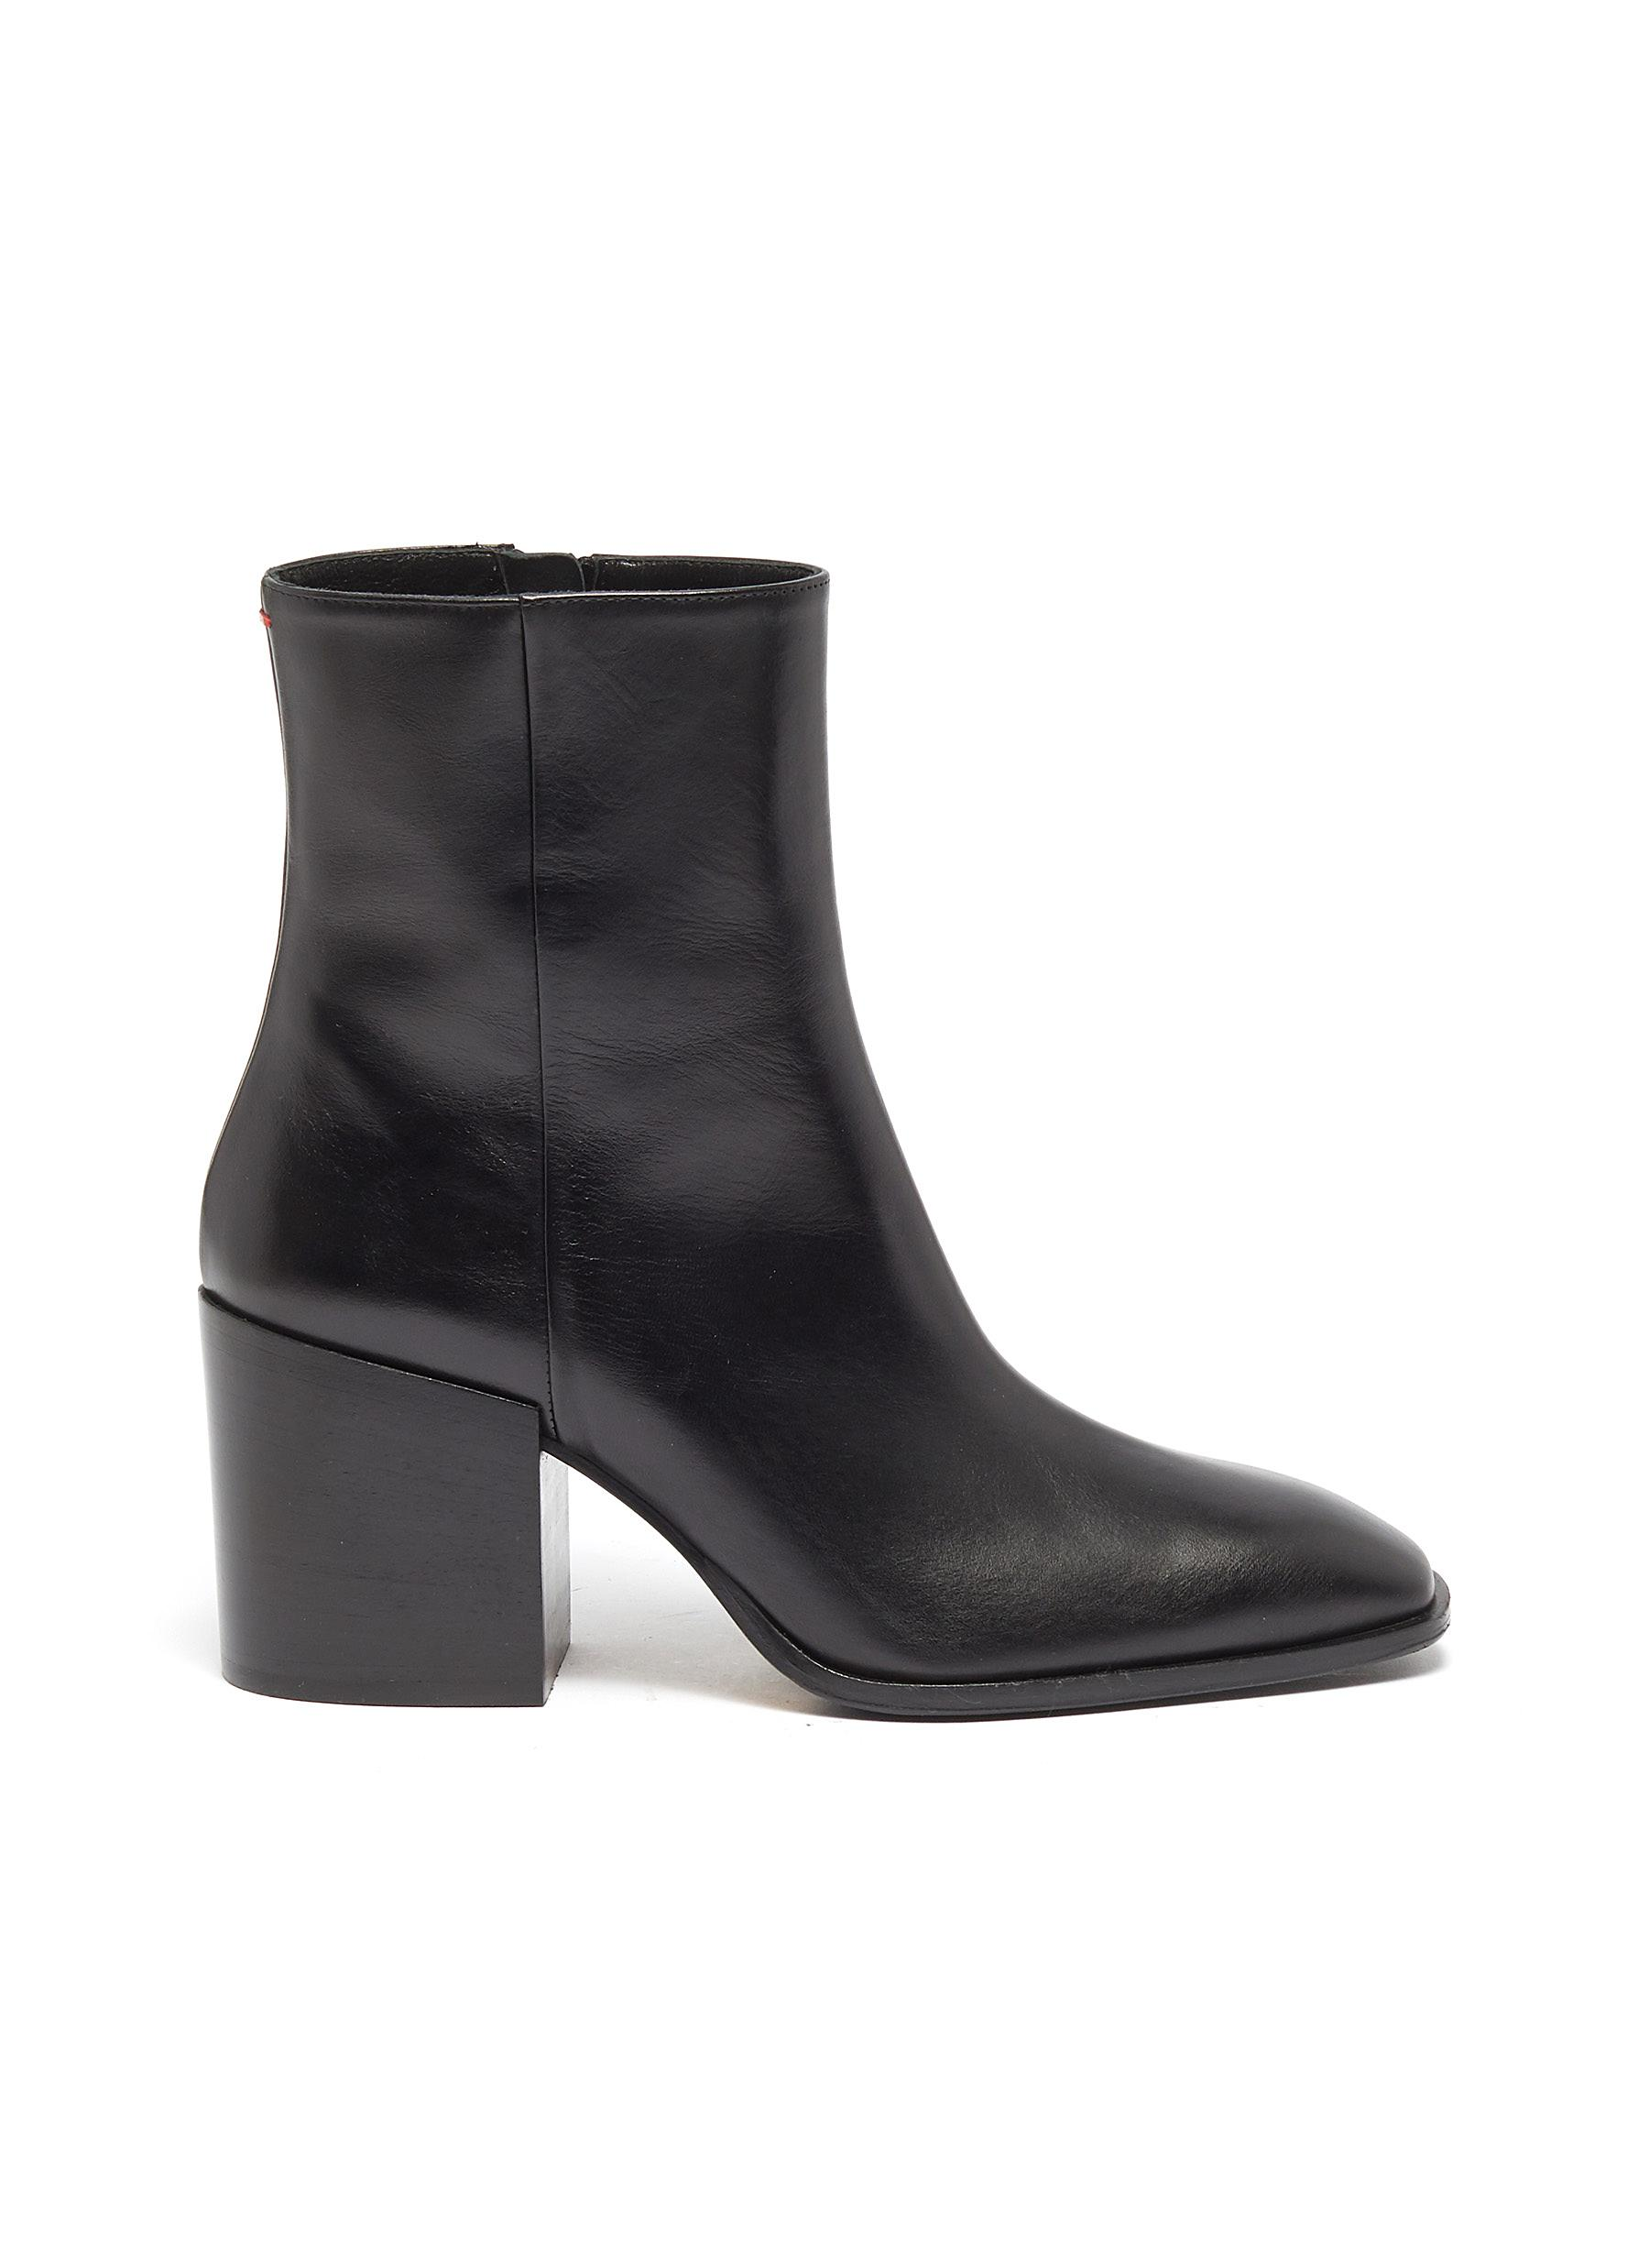 Leandra leather ankle boots by Aeyde